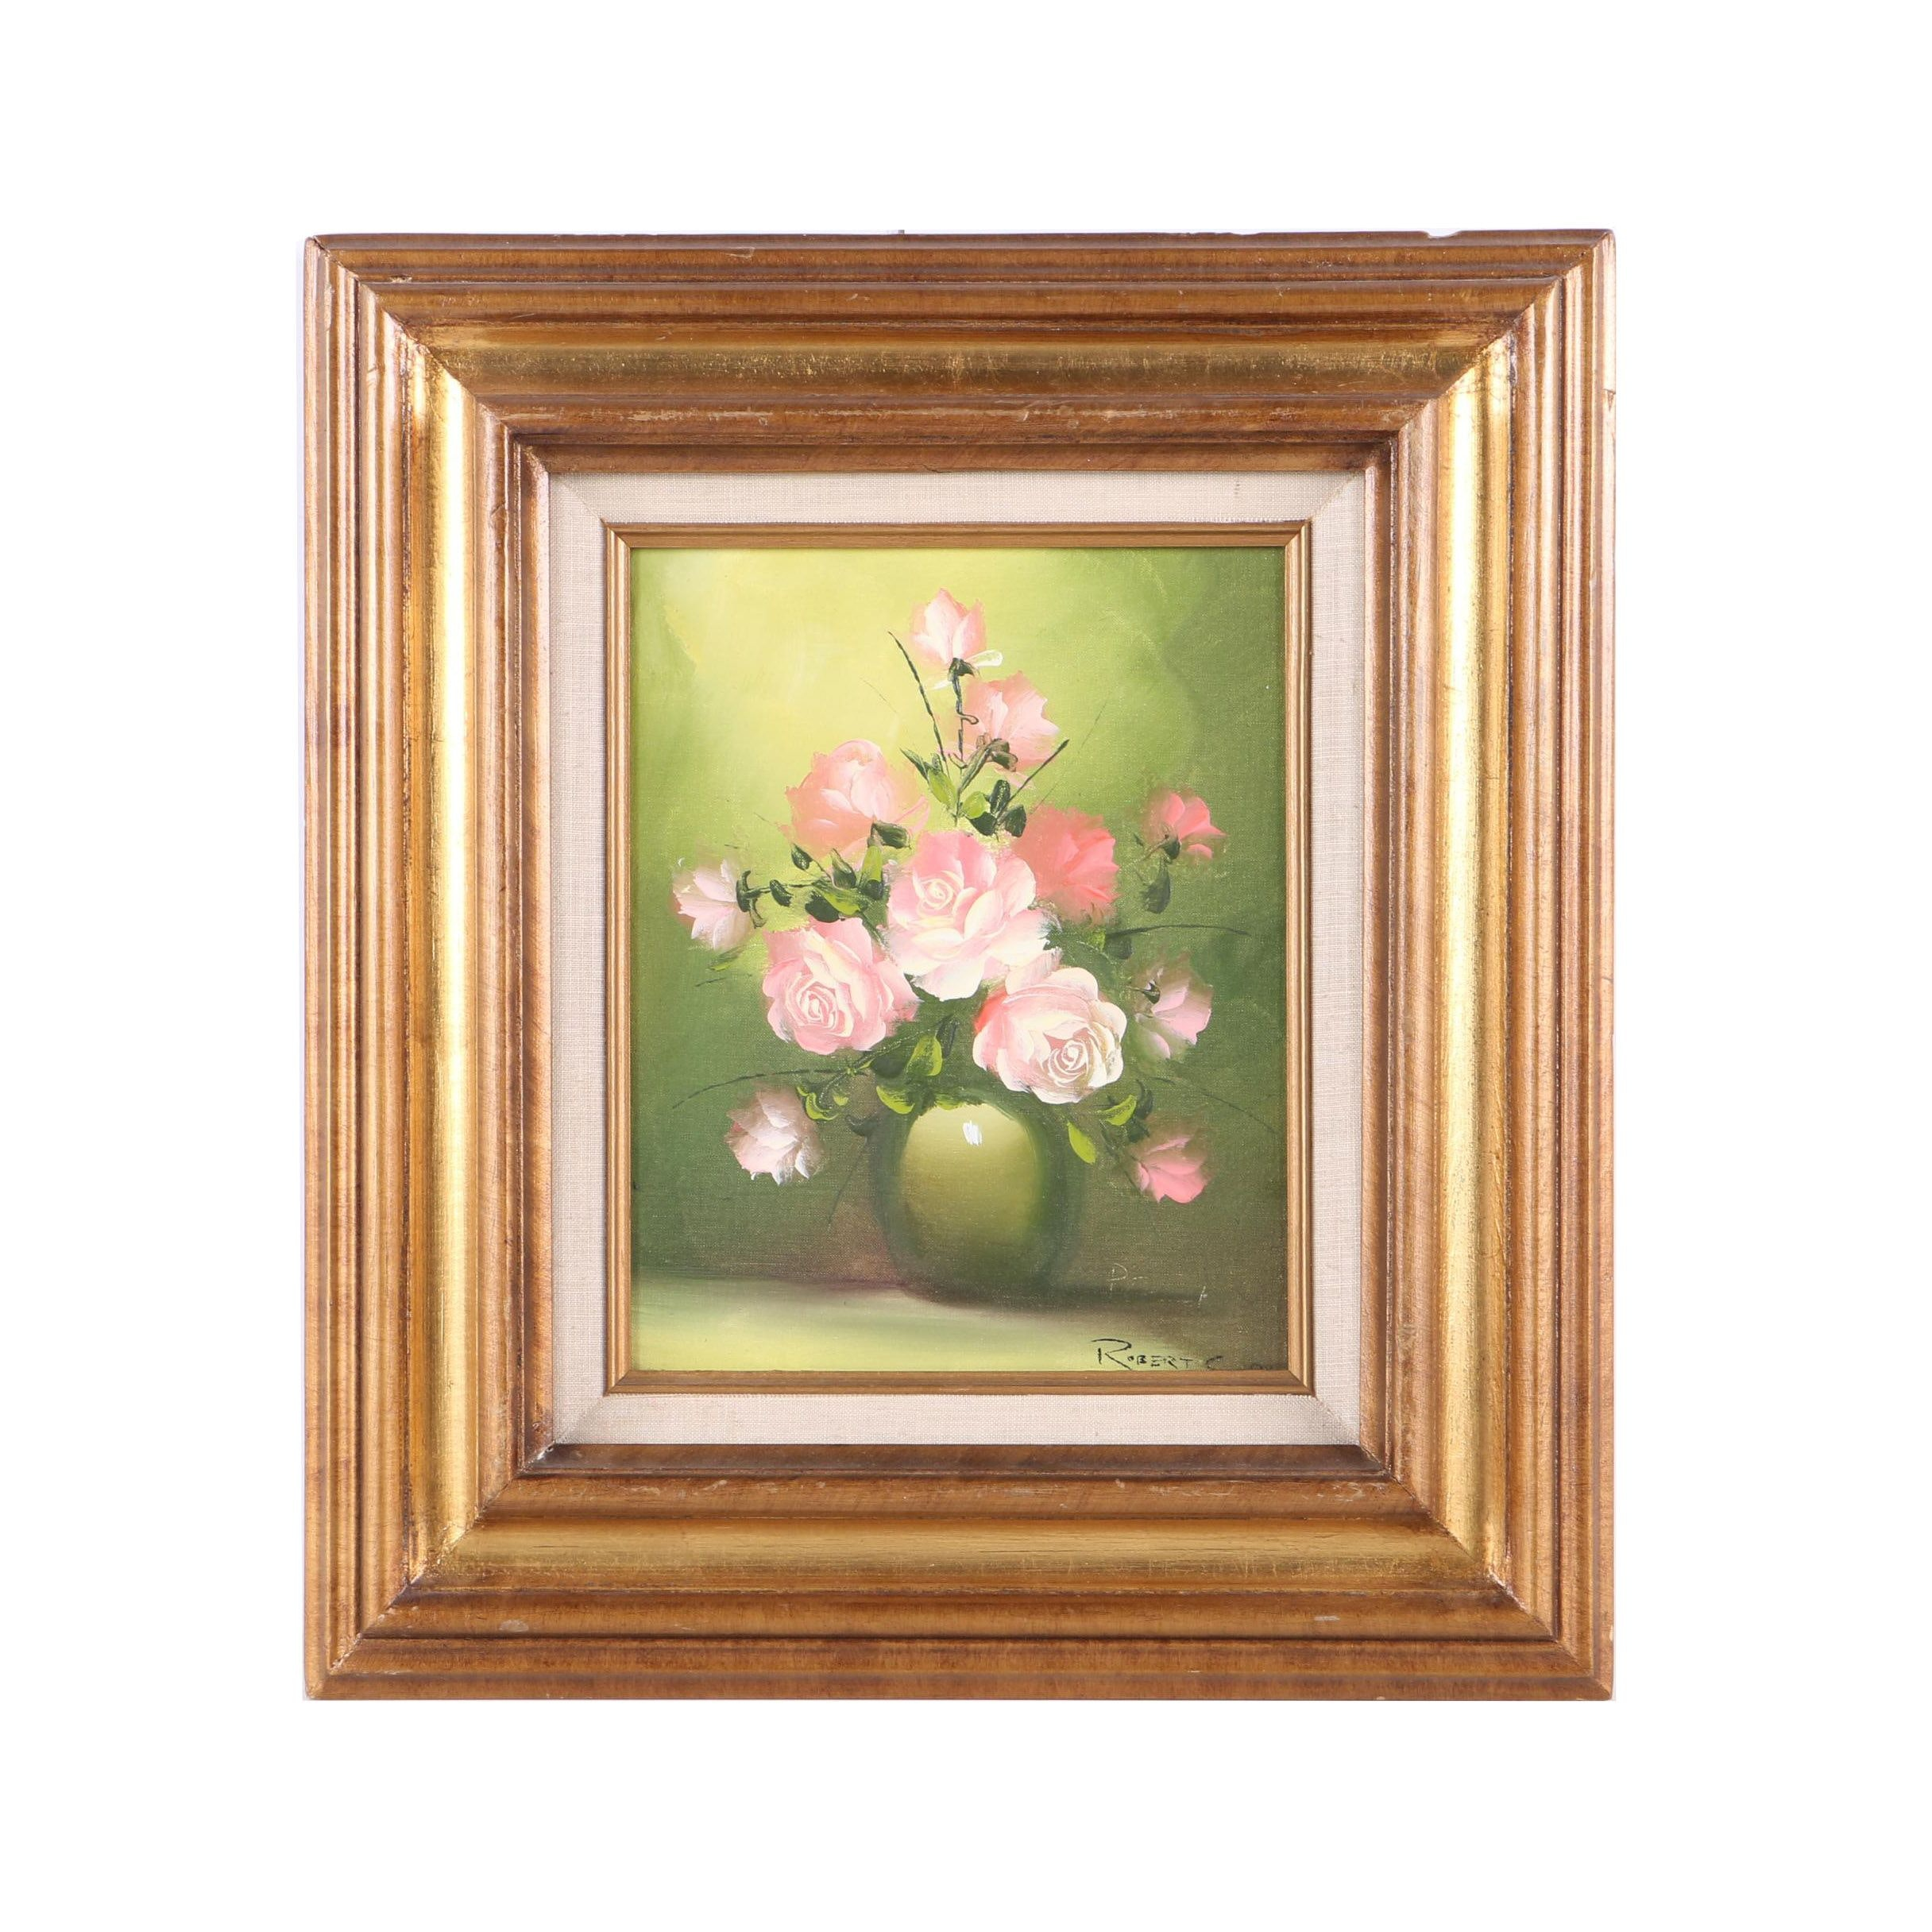 Robert Cox Oil Painting on Canvas Board of Still Life with Pink Roses